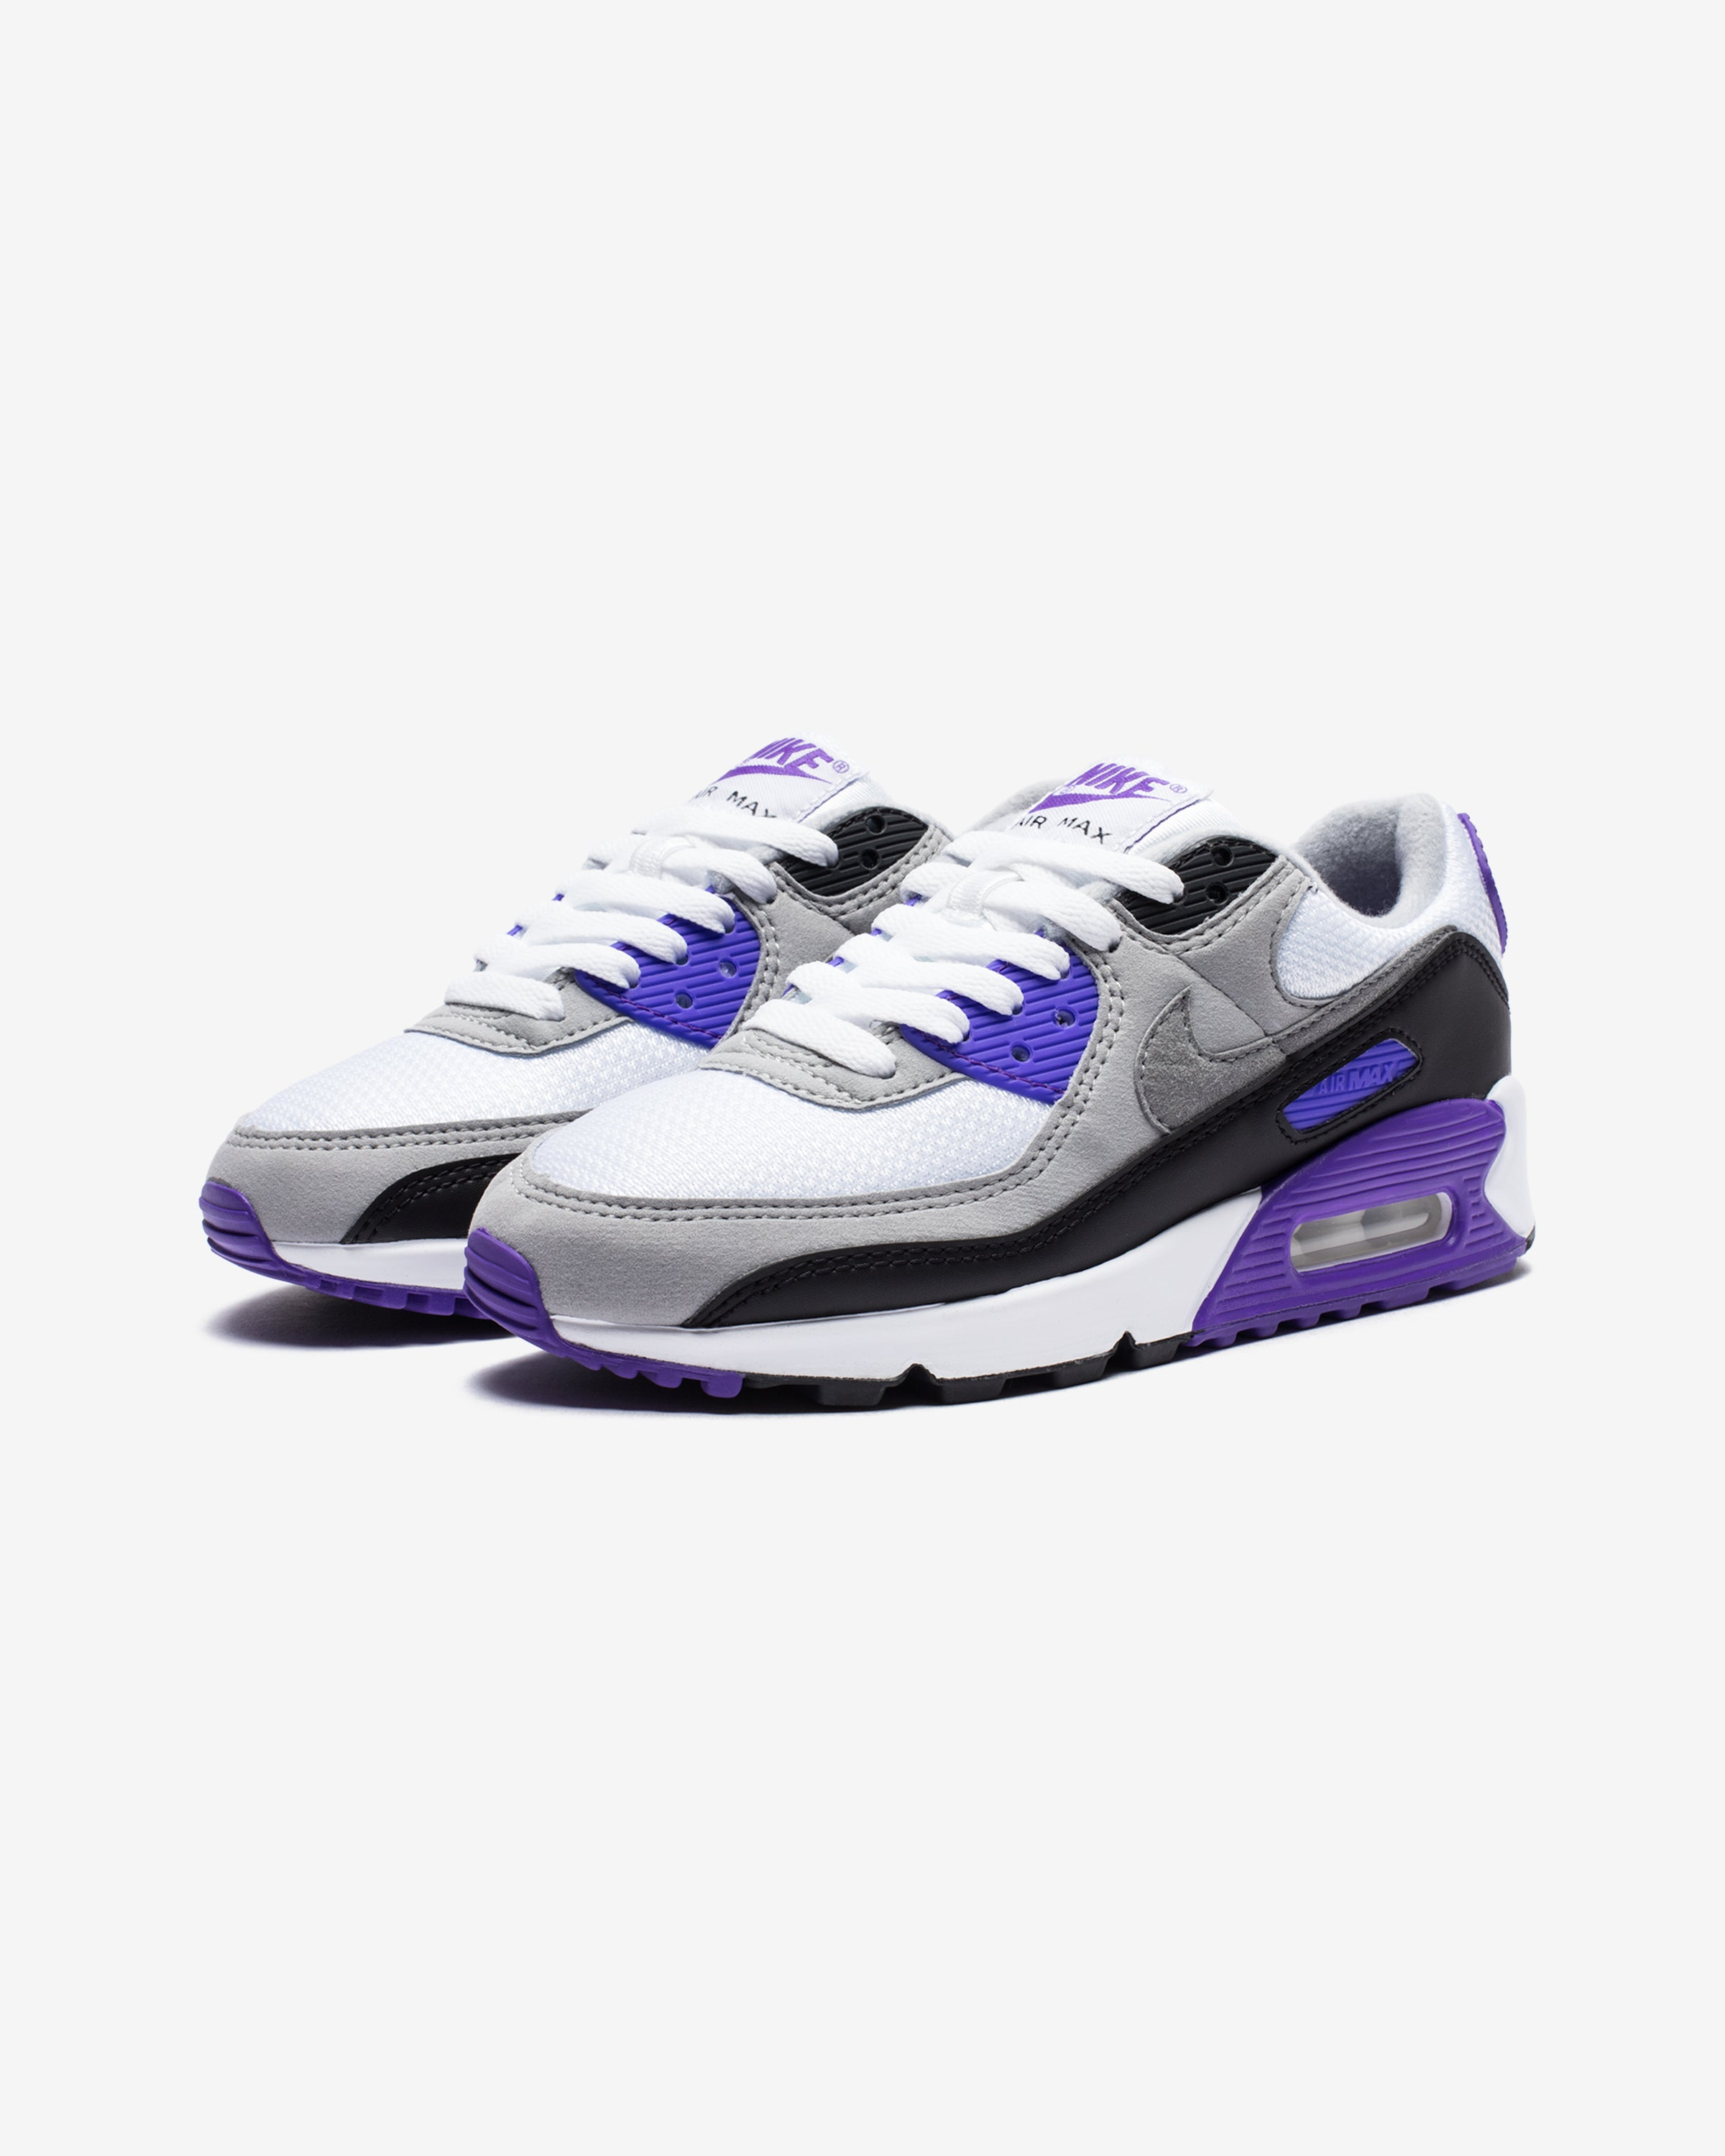 WOMEN'S AIR MAX 90 - WHITE/PARTICLEGREY/HYPERGRAPE/BLACK